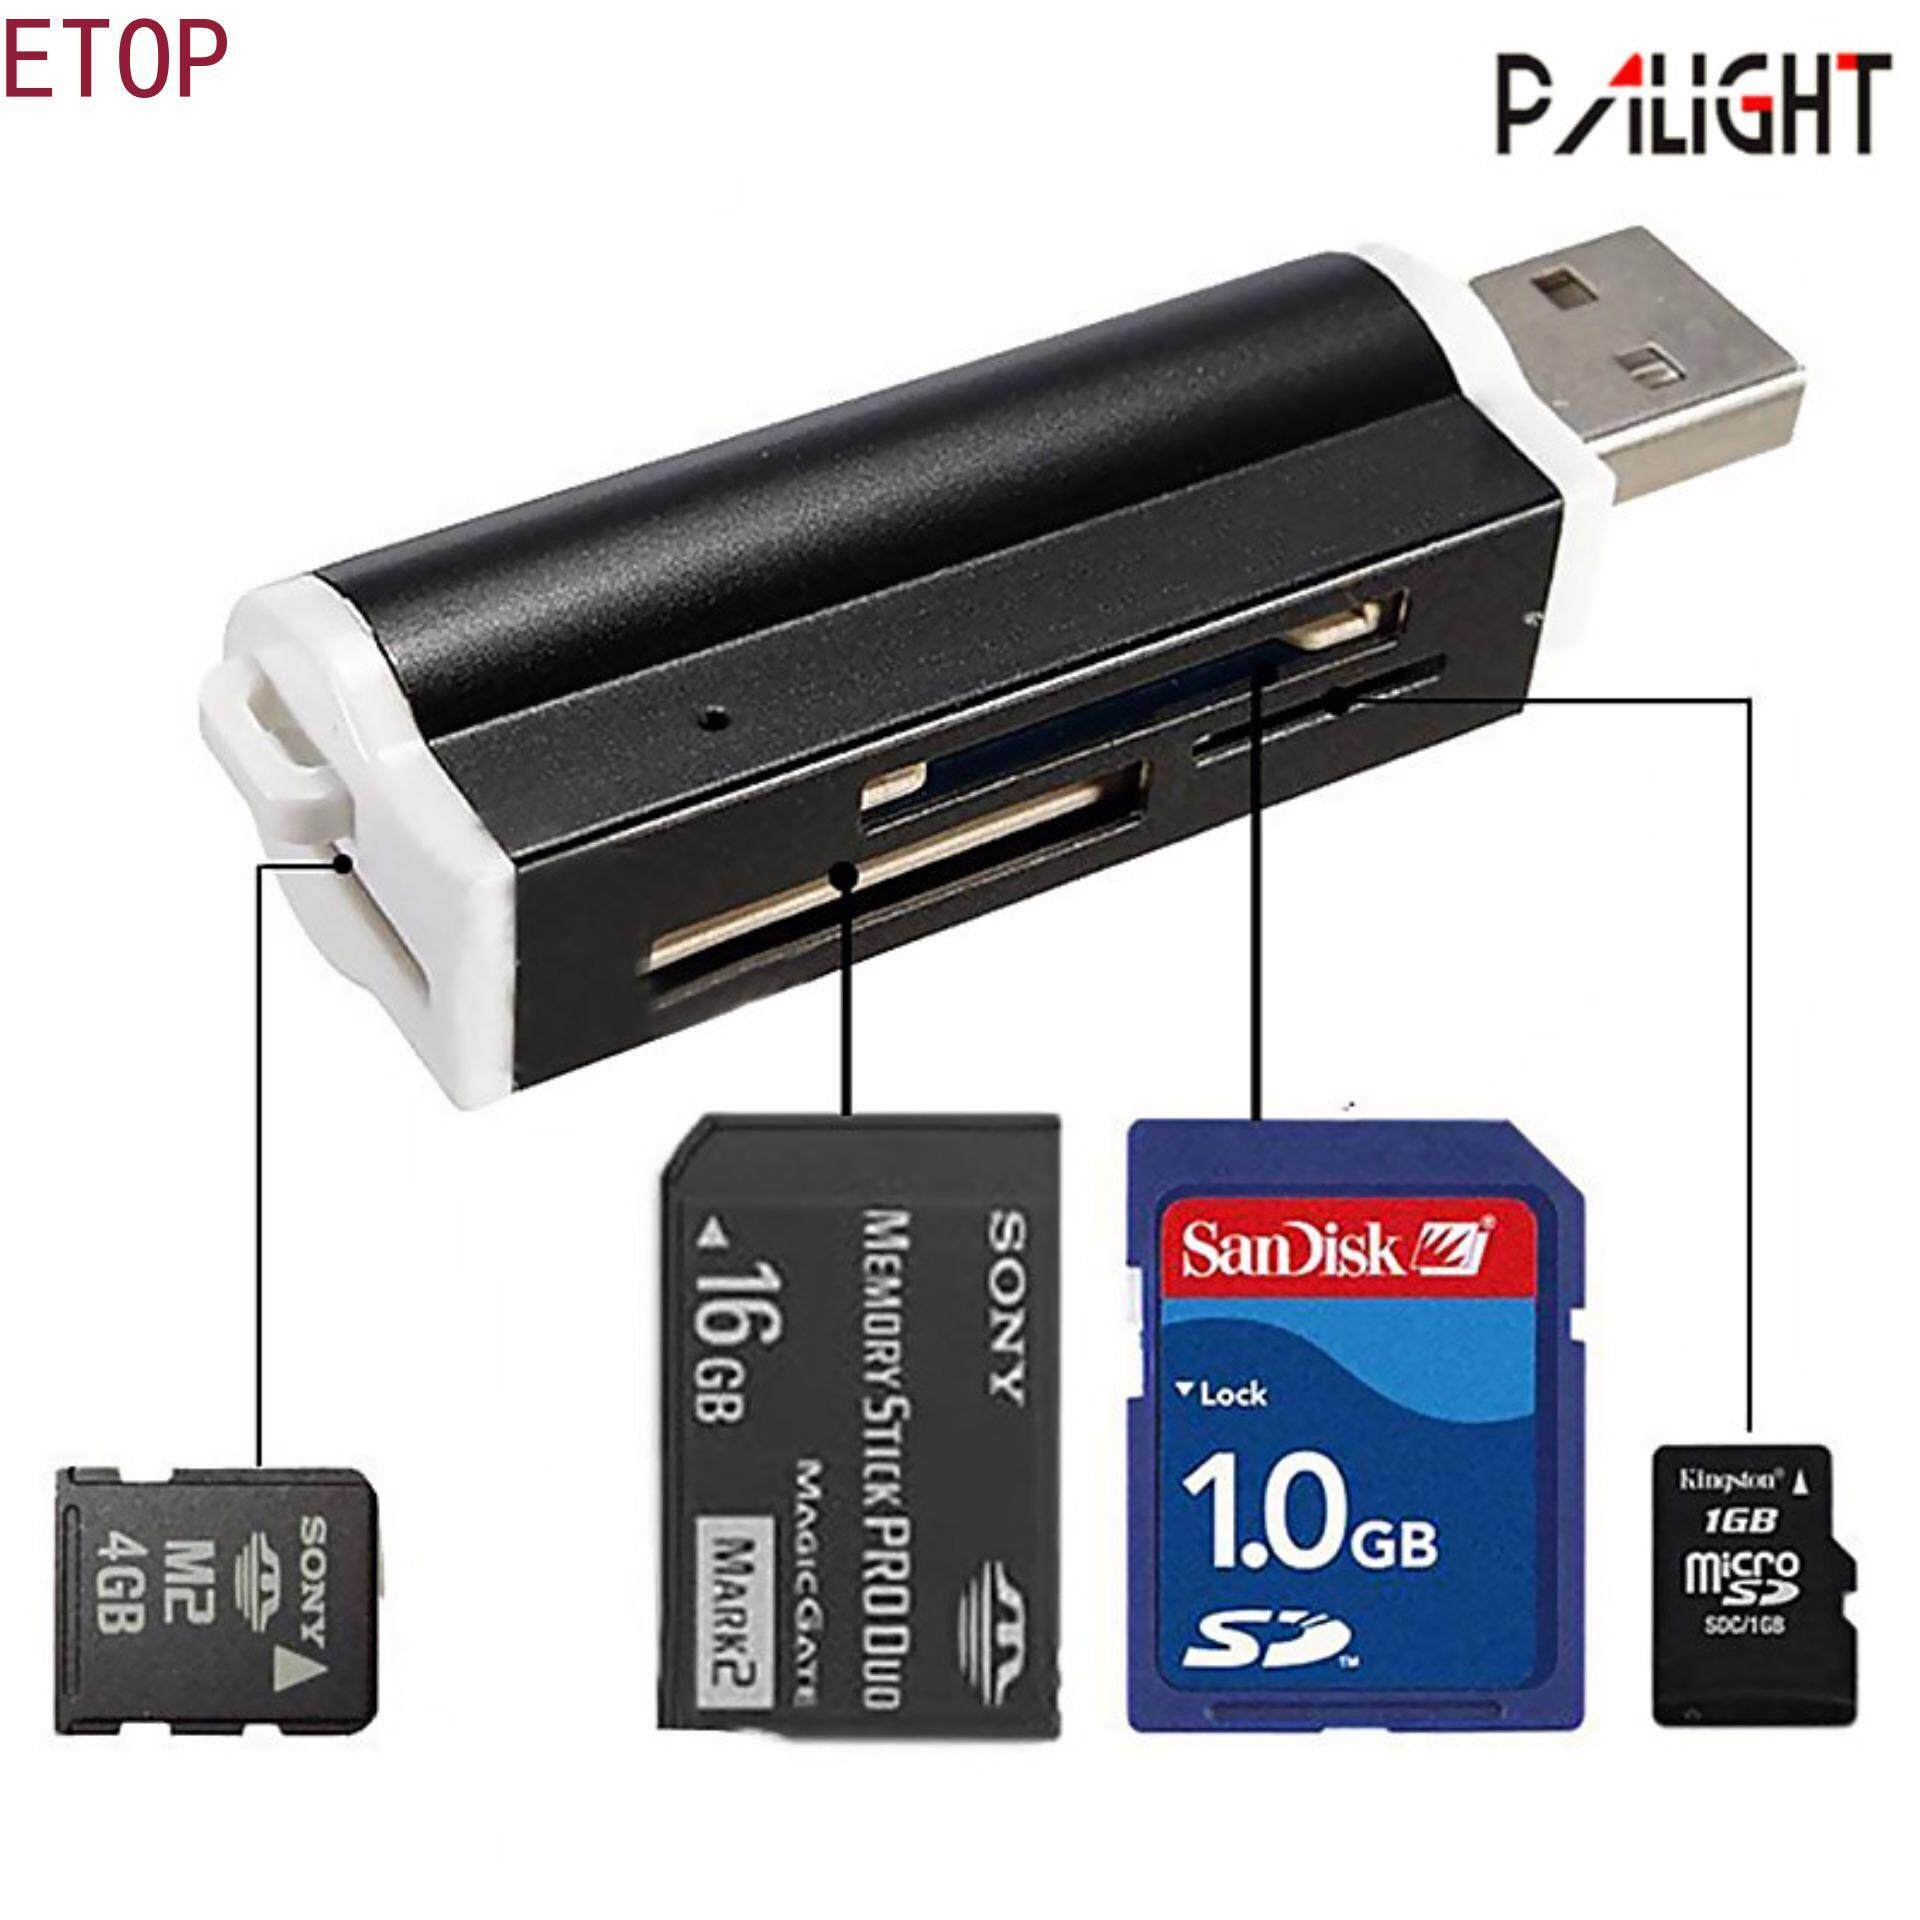 Multi-Colored Usb2.0 Memory Card Reader For Micro Sd Mmc Sdhc Tf Card By Etop Store.